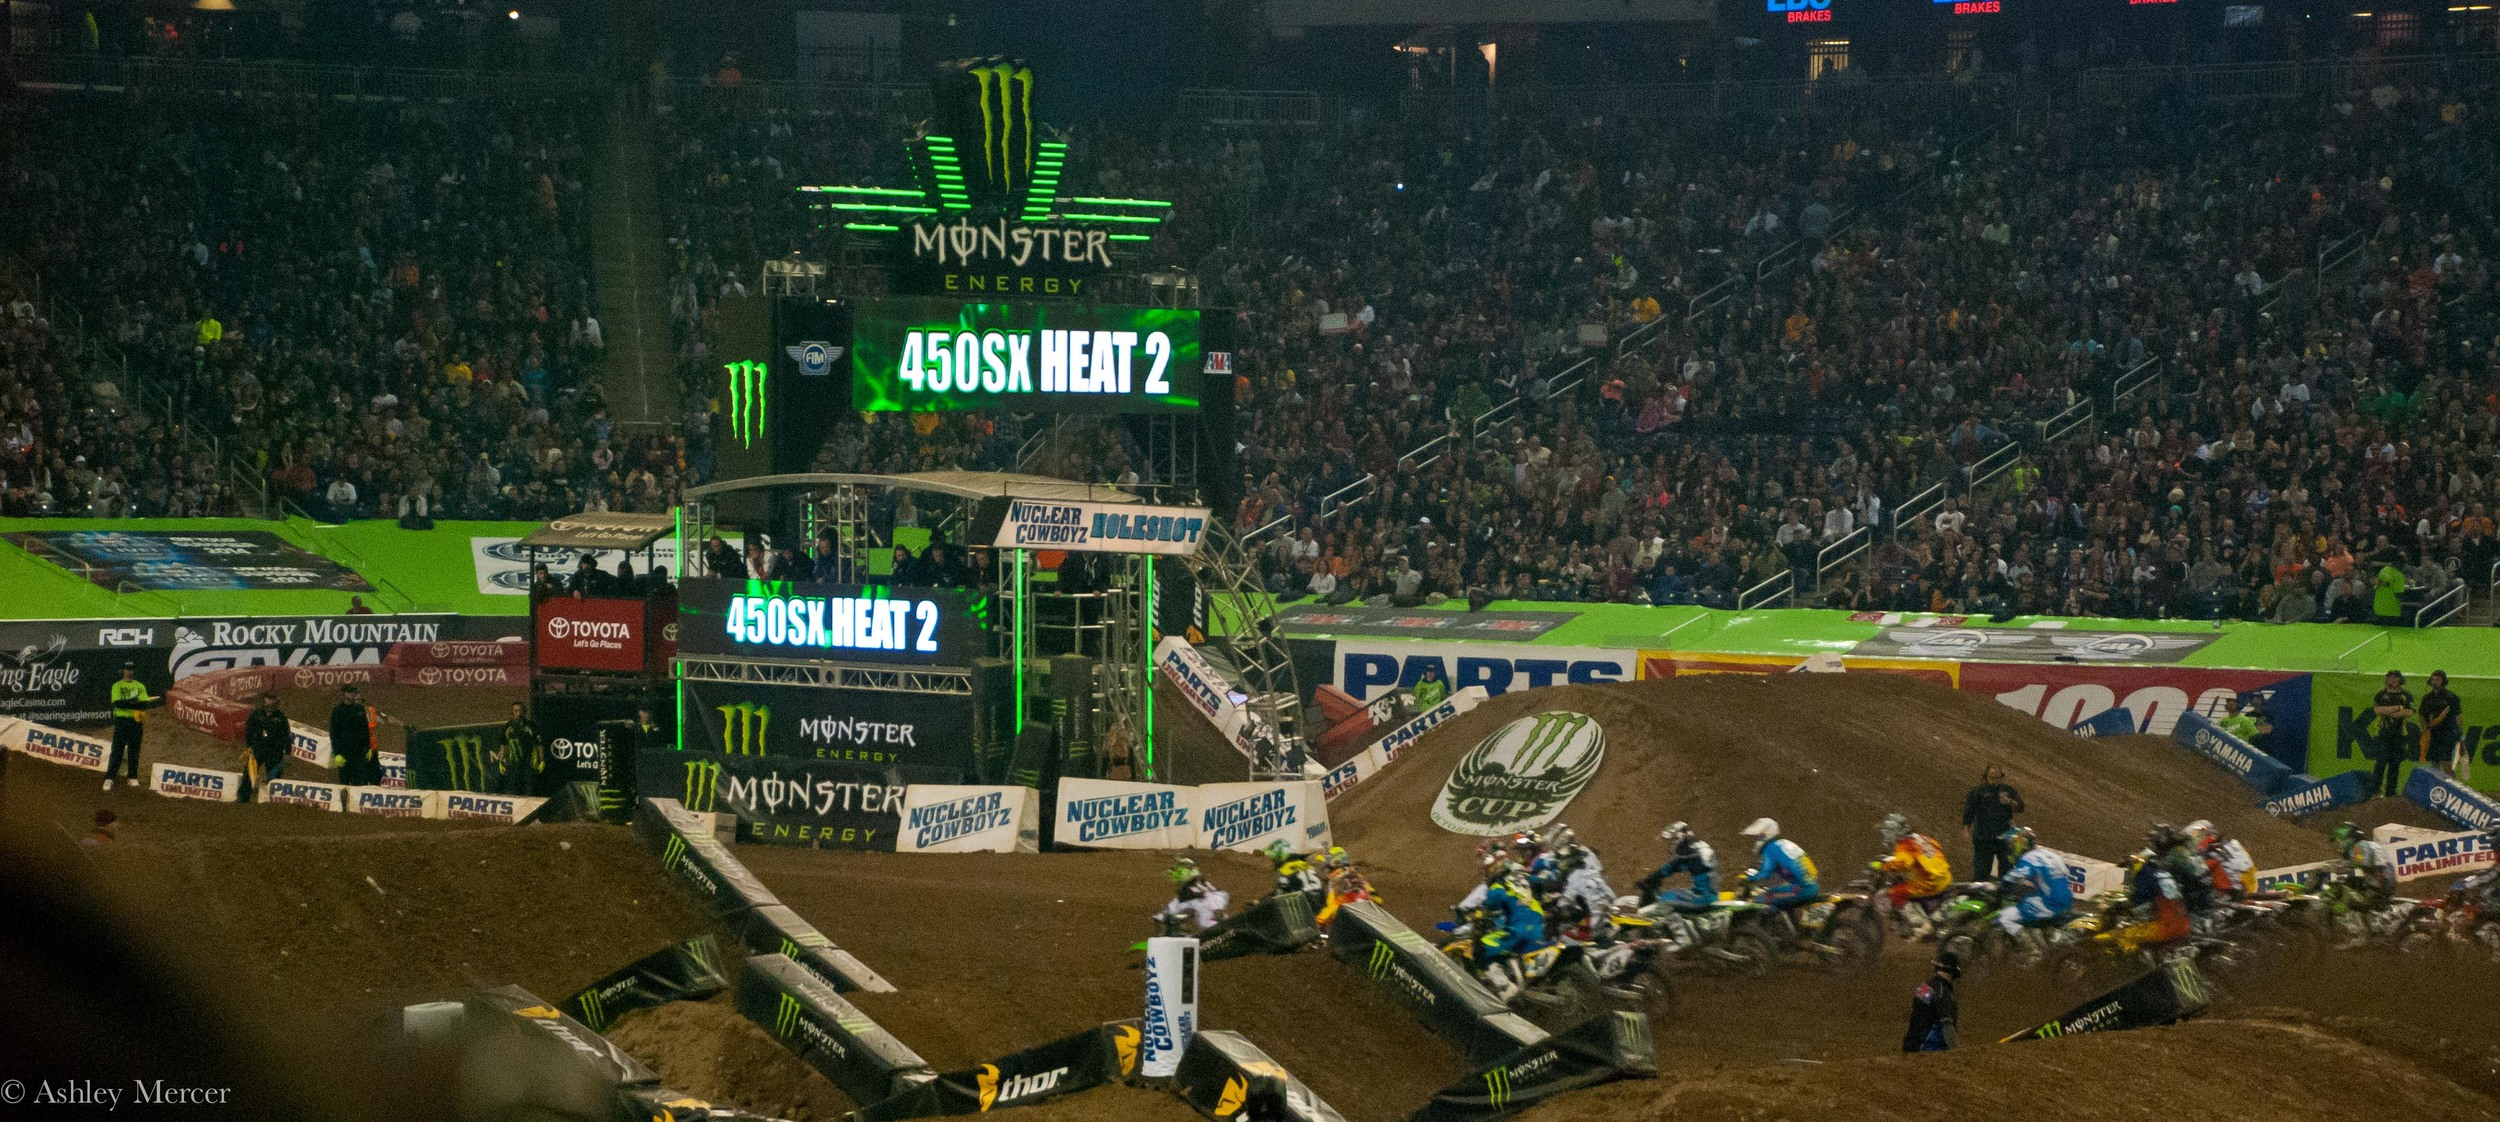 Supercross 2014 Detroit-10.jpg